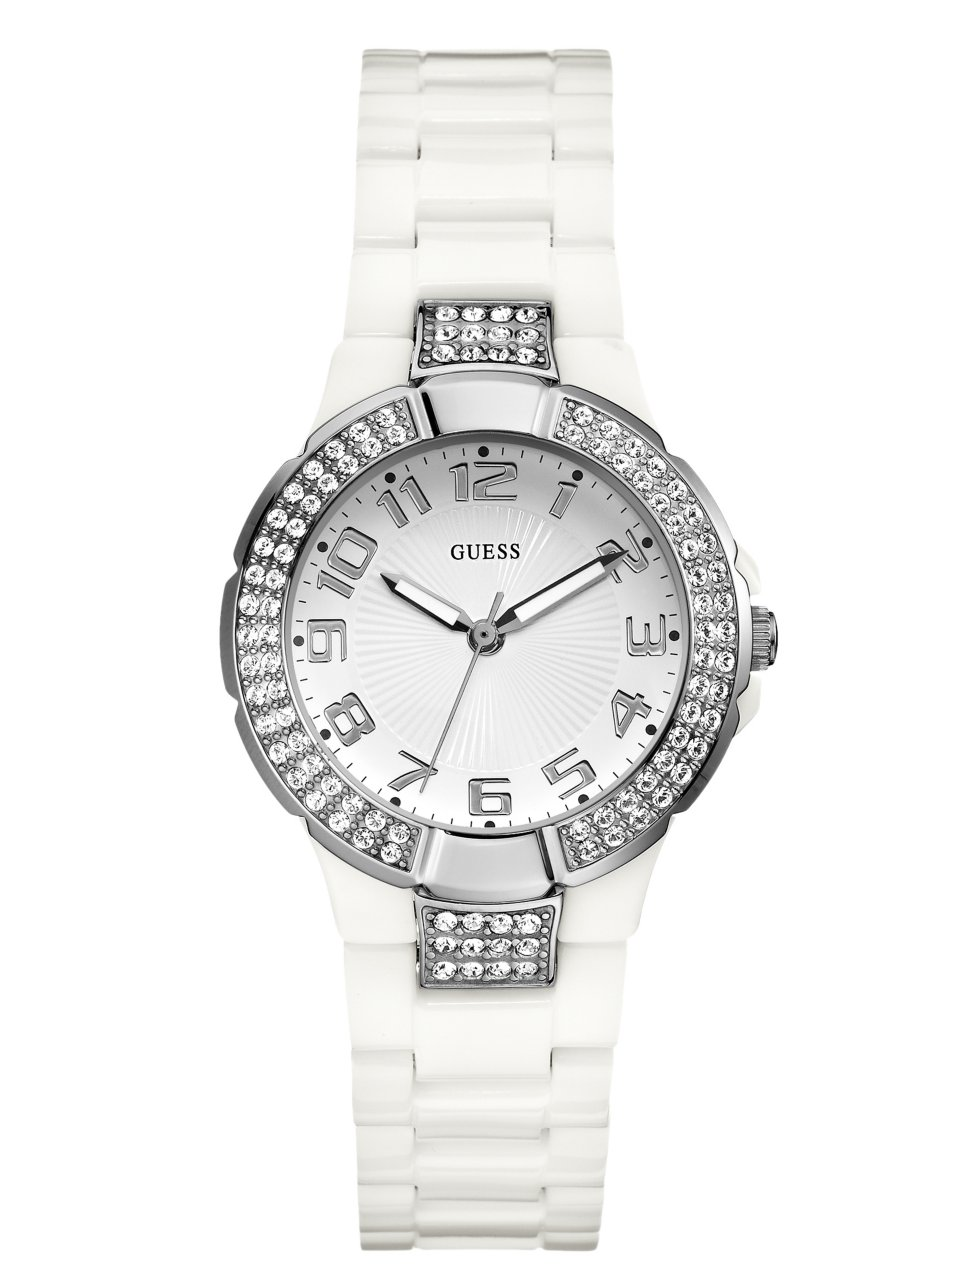 GUESS Status In-the-Round Watch - White and Si